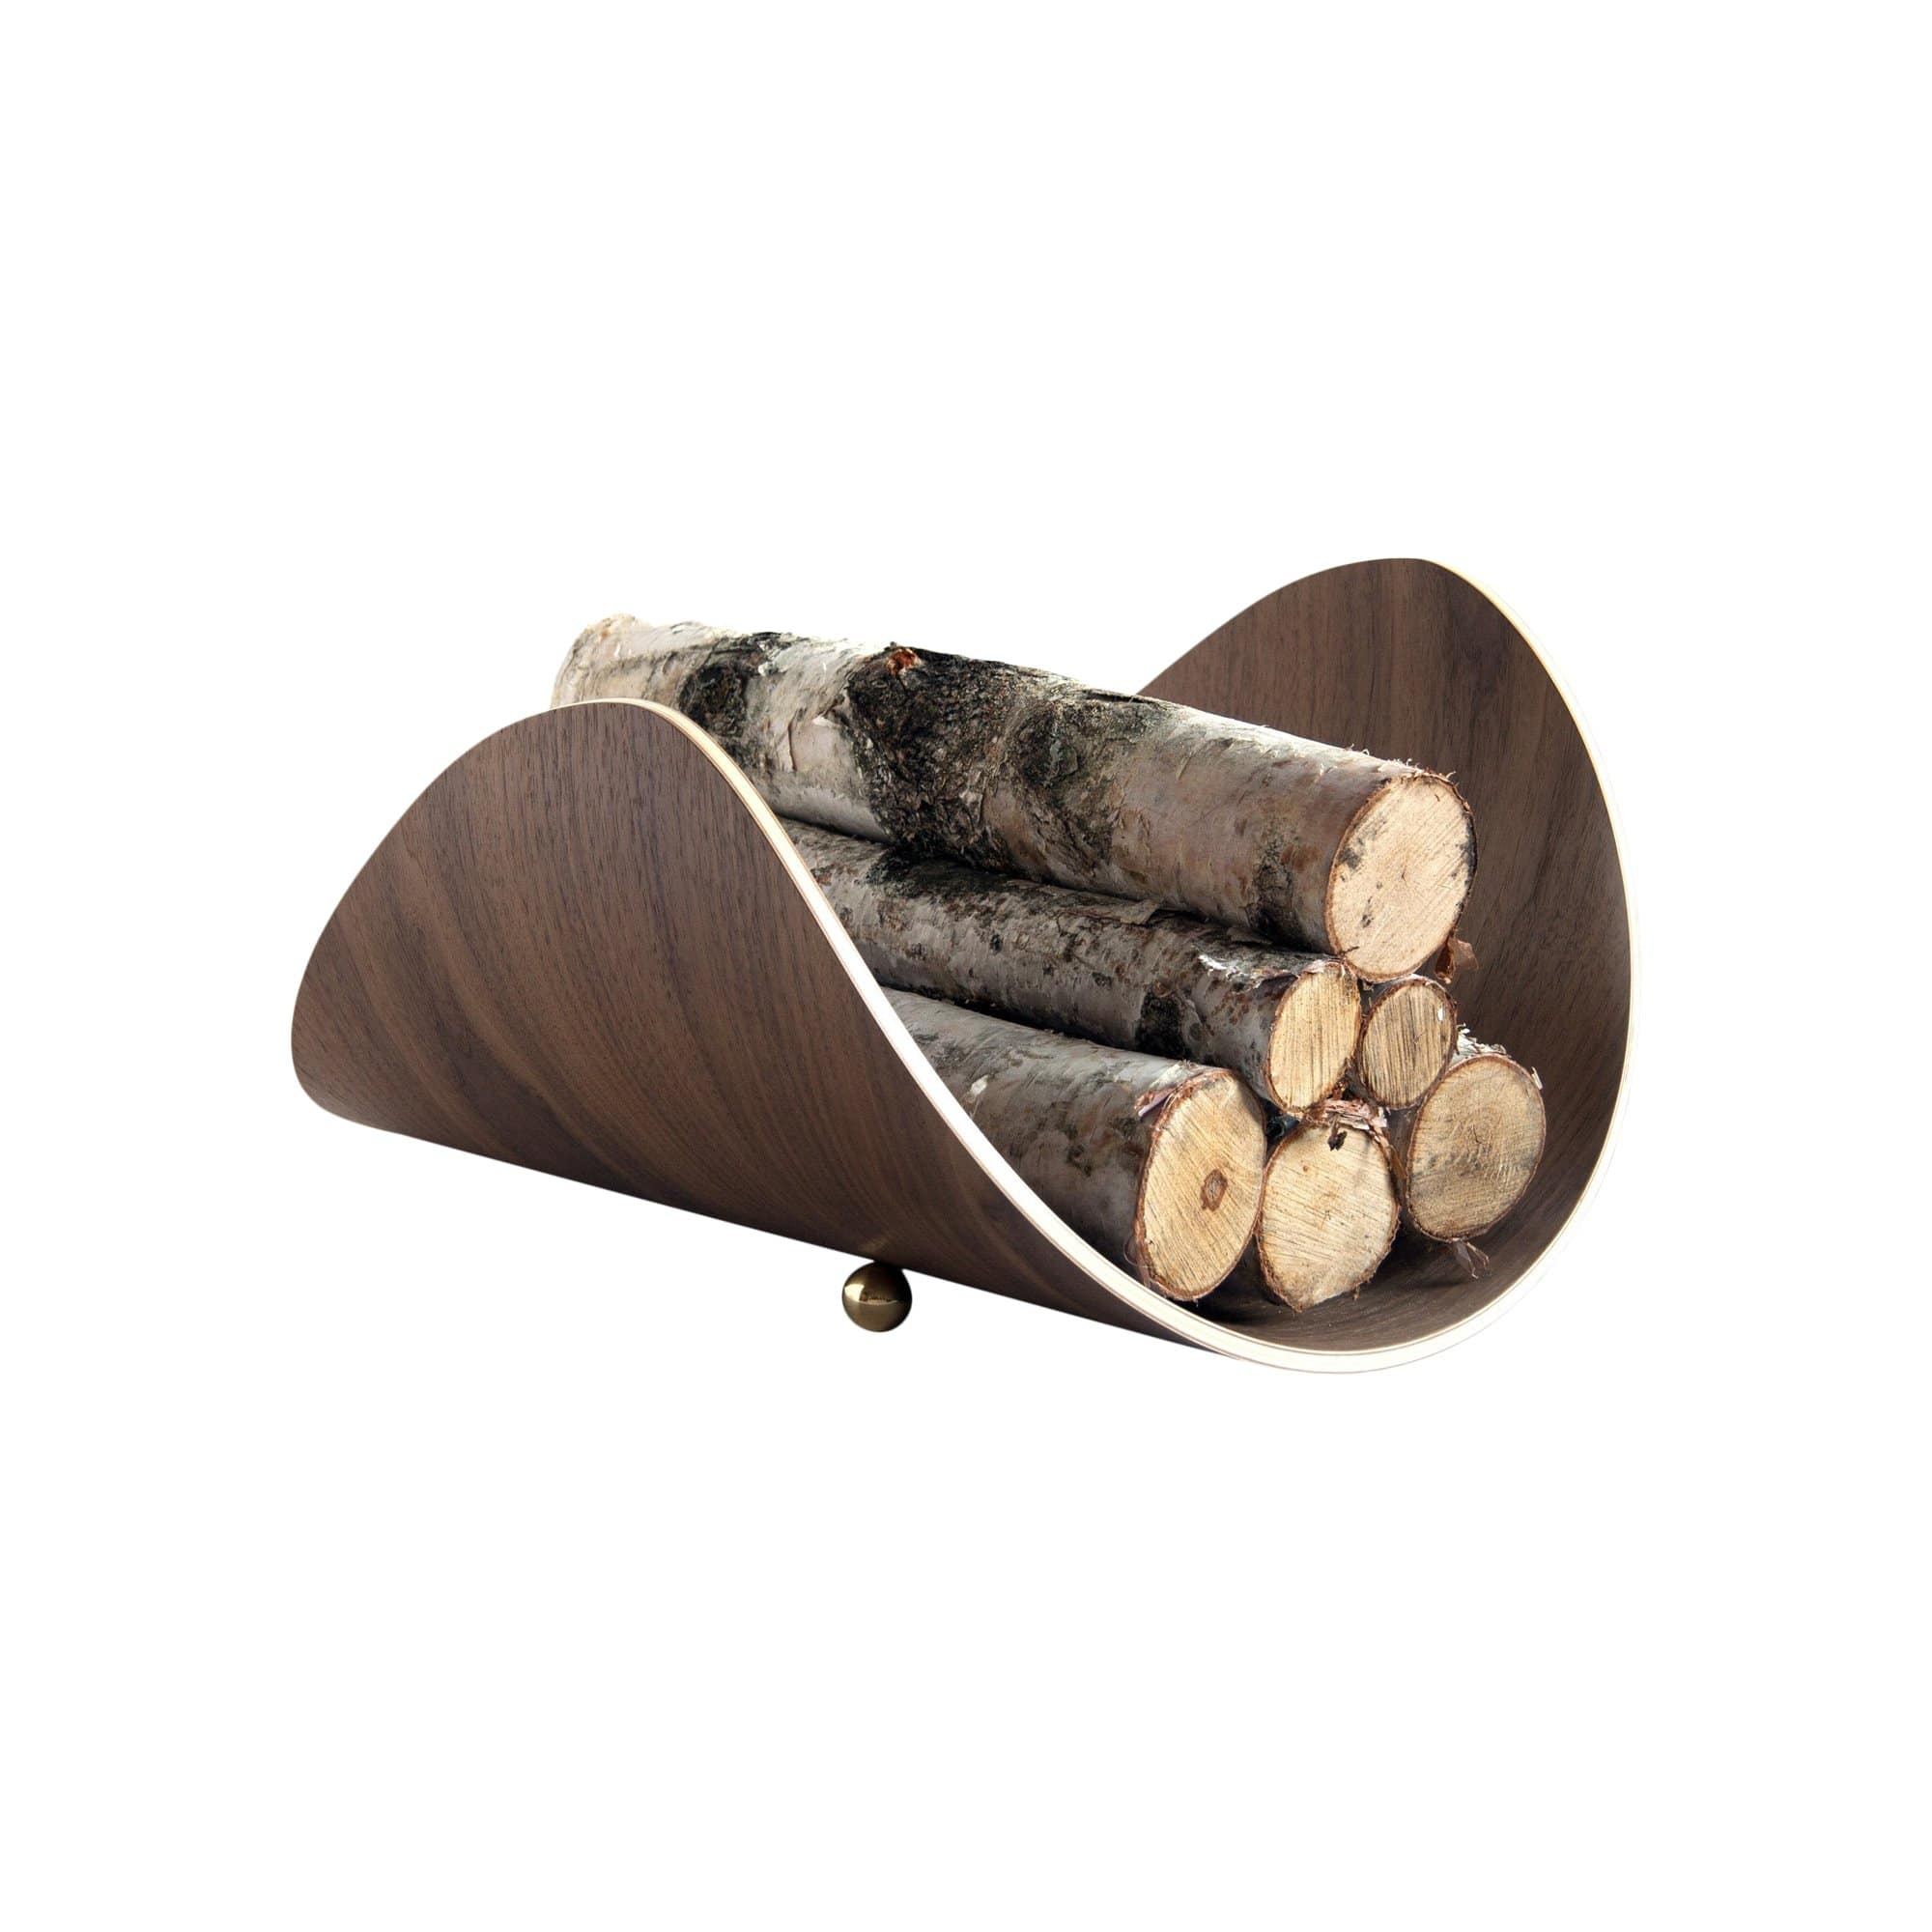 Ciseal Storage + Organization Mission Firewood Holder